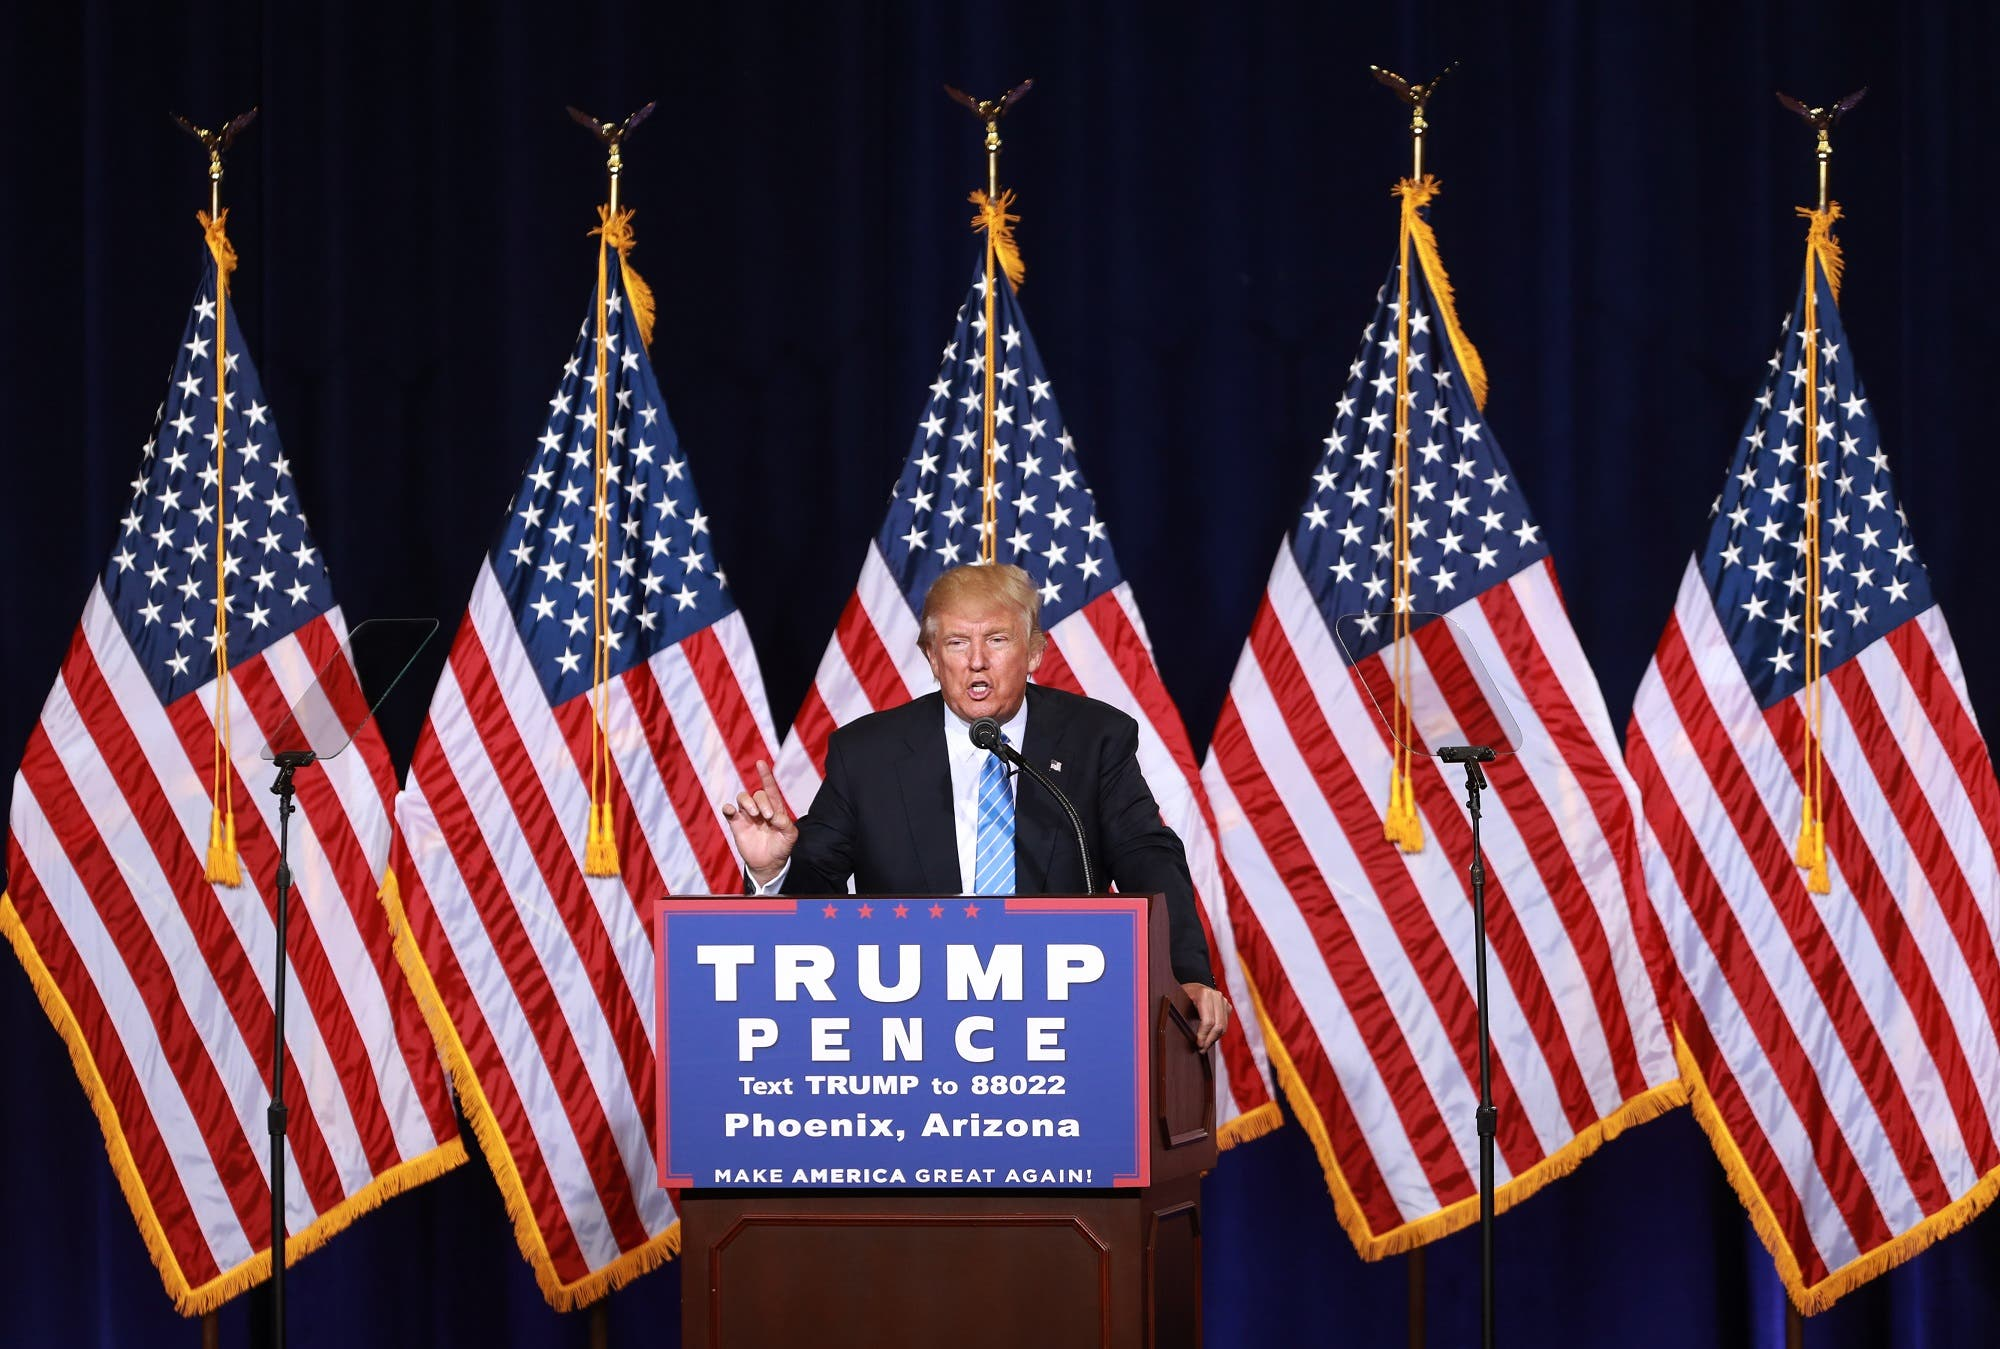 Trump unveils his 10-point plan to crack down on illegal immigration during a campaign event in Phoenix, Arizona, on August 31, 2016. (AFP)